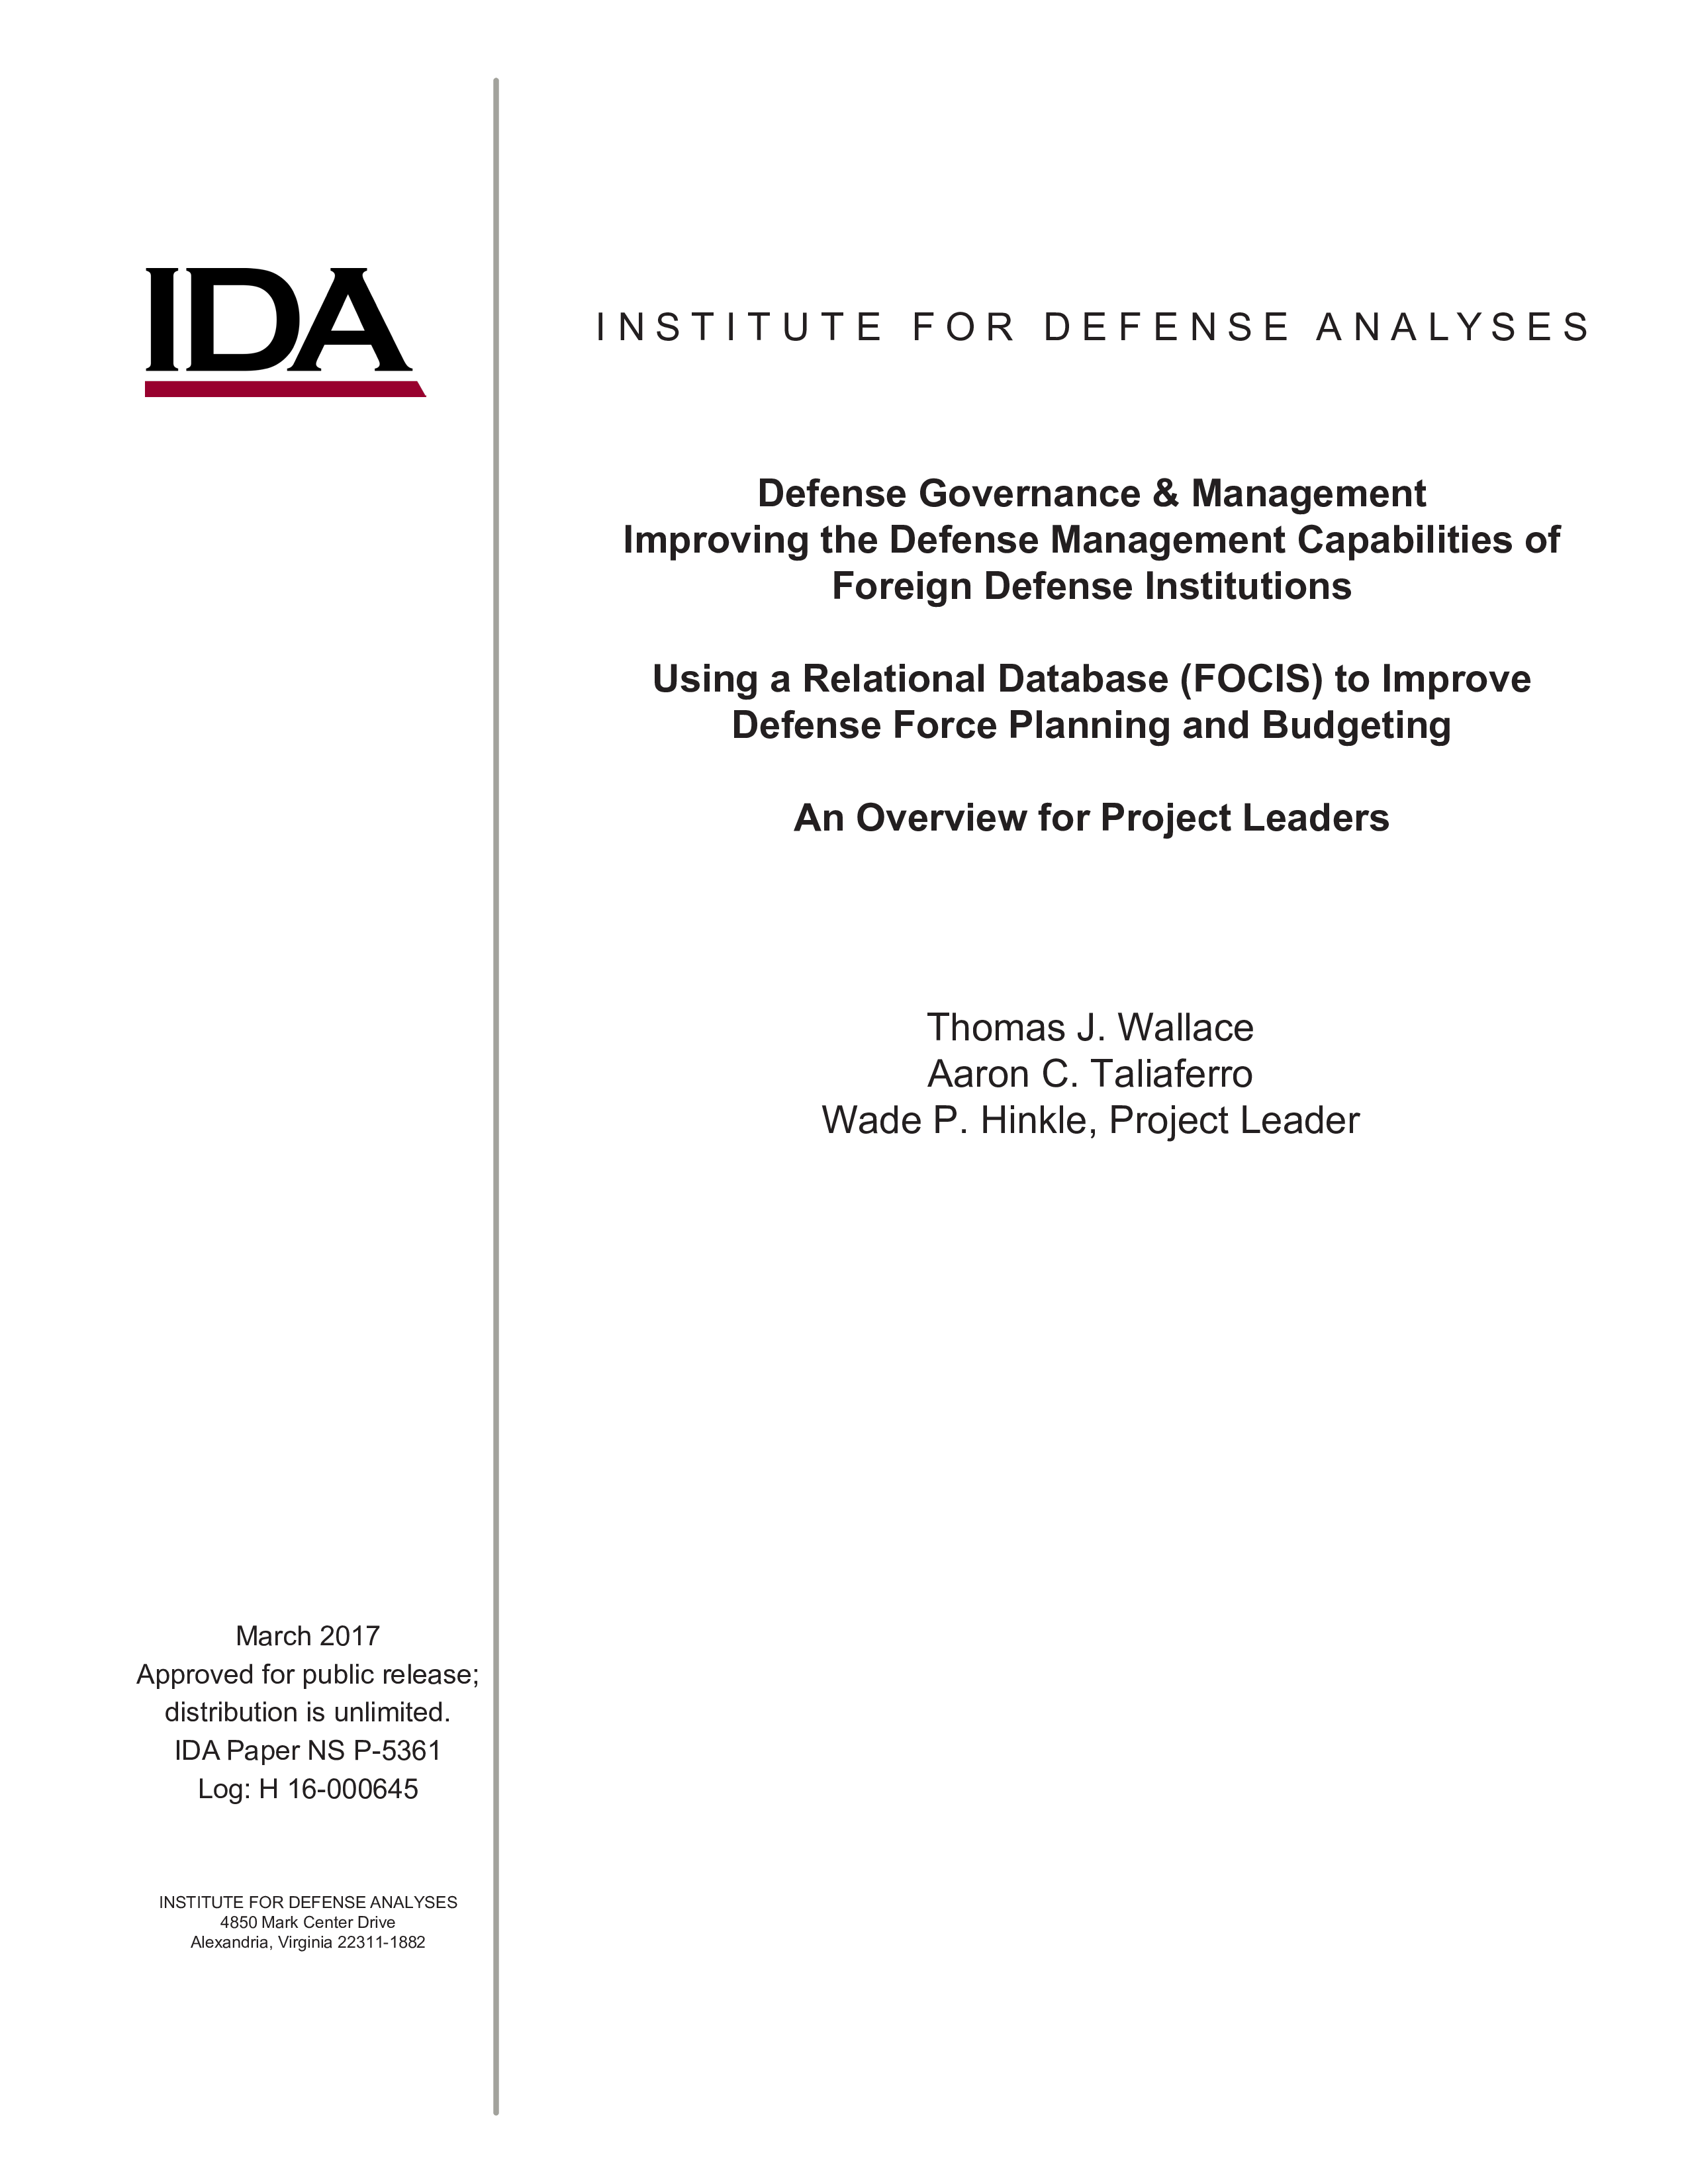 Defense Governance & Management Improving the Defense Management Capabilities of Foreign Defense Institutions – Using a Relational Database (FOCIS) to Improve Defense Force Planning and Budgeting – An Overview for Project Leaders